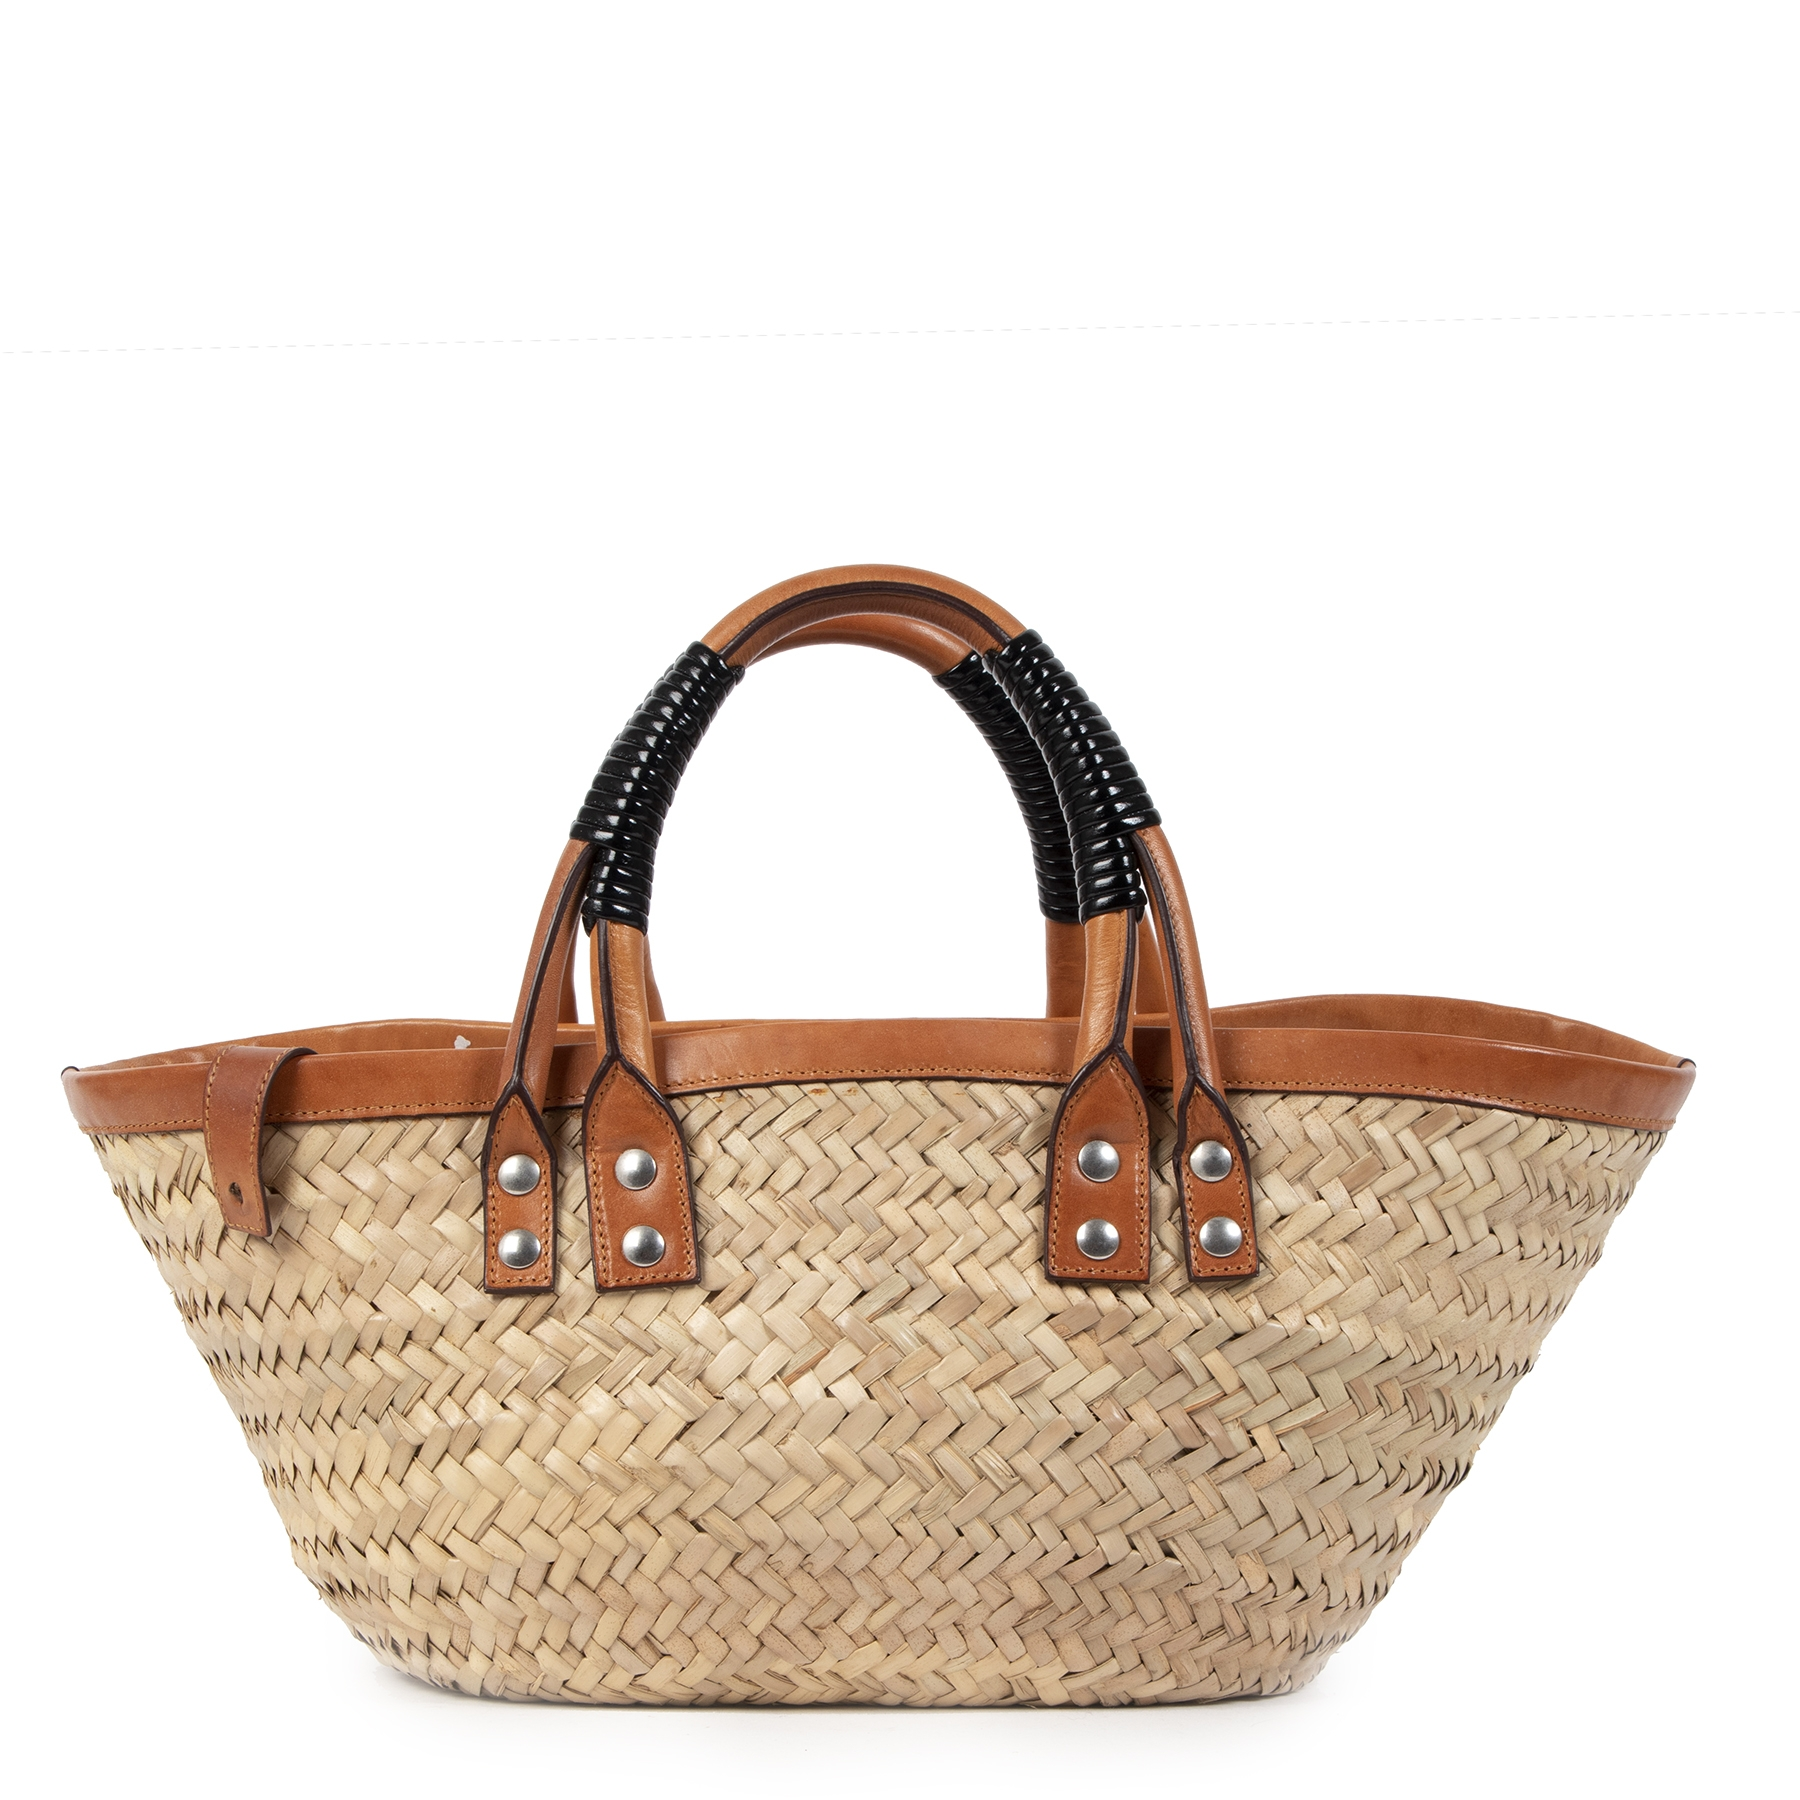 Balenciaga Bistrot Panier woven Beige Small Top Handle Bag